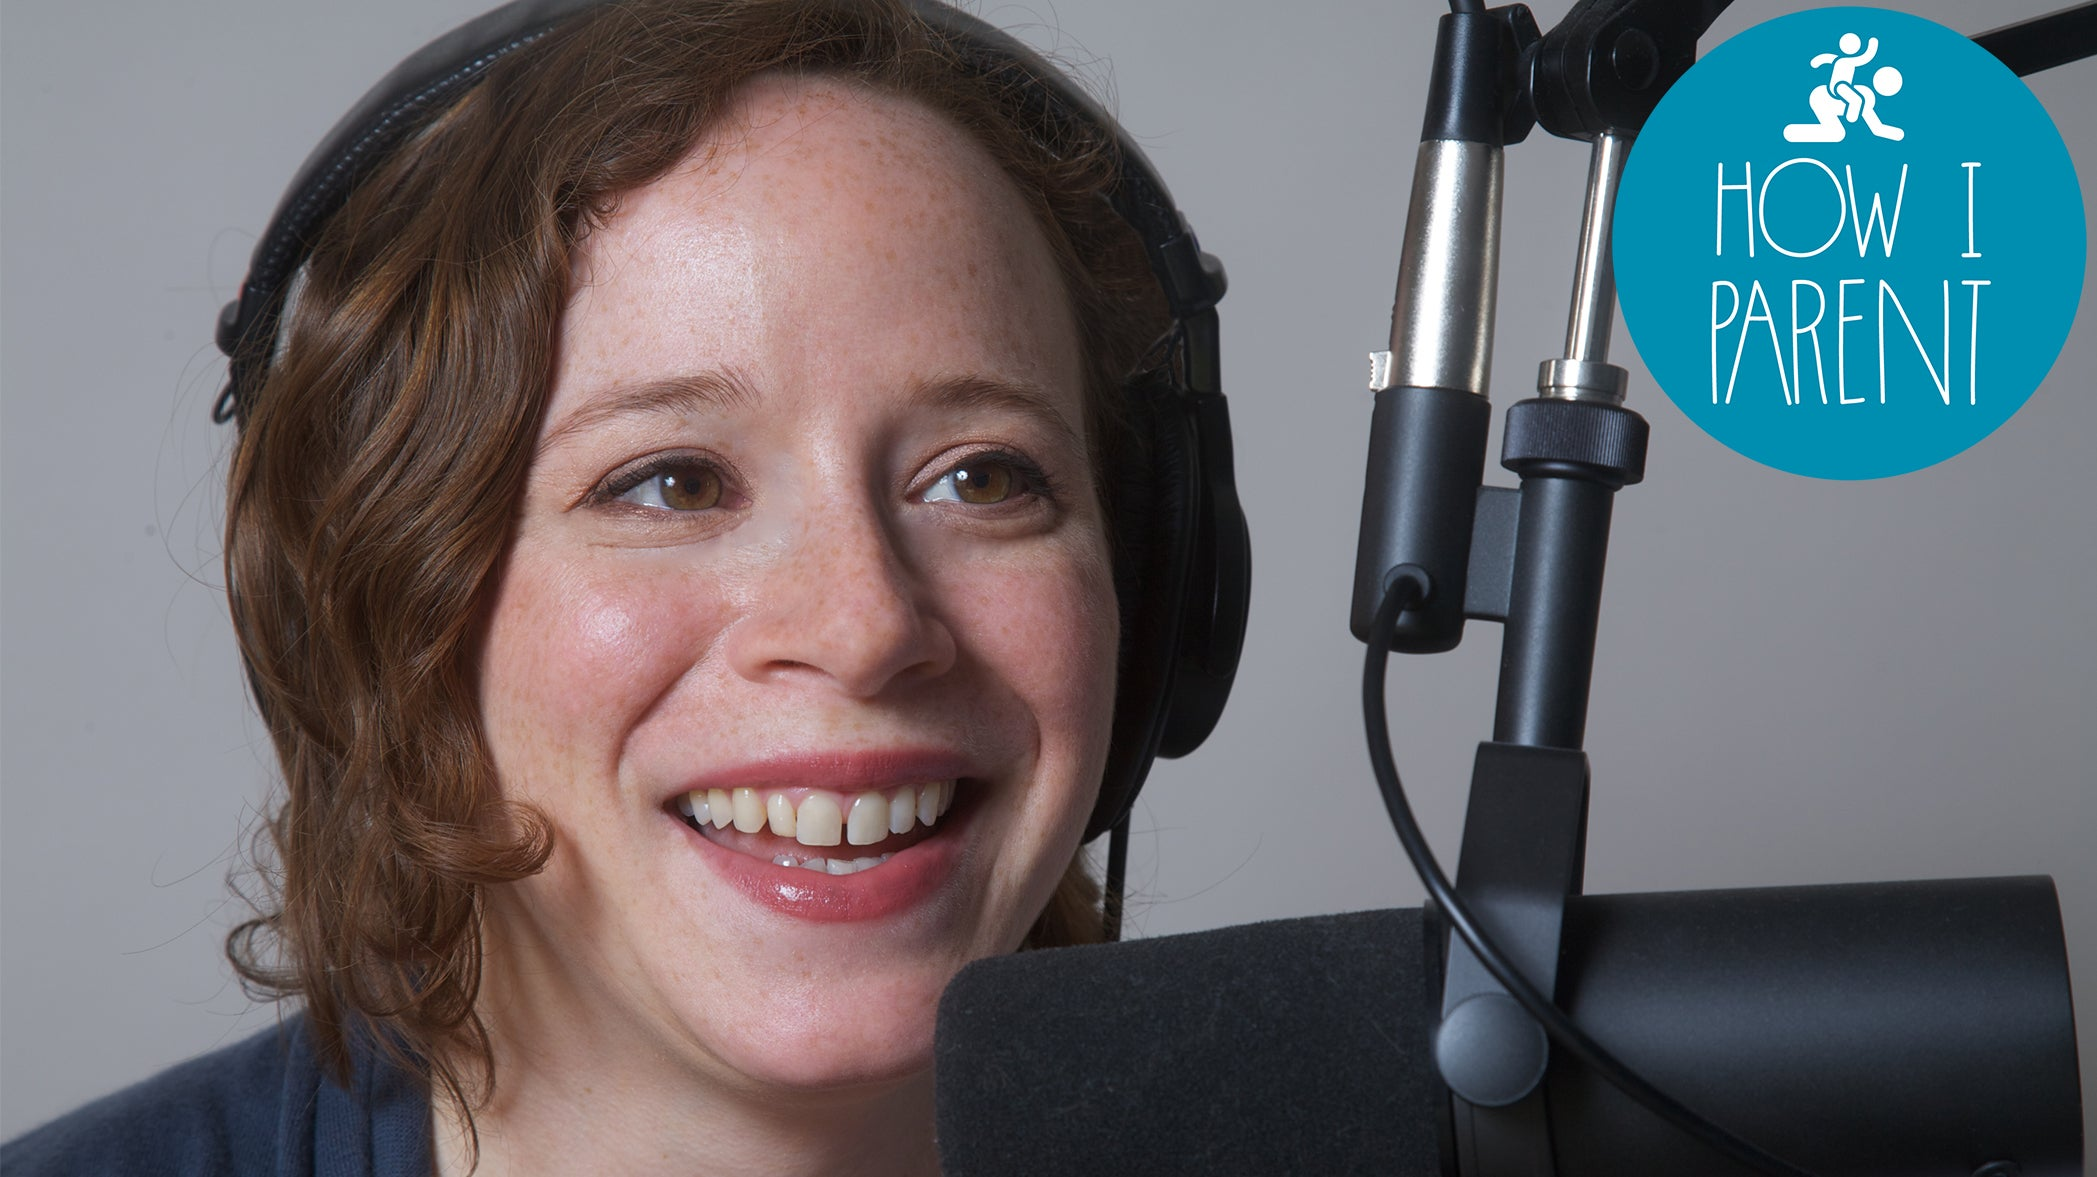 I'm Author And Podcaster Hillary Frank, And This Is How I Parent